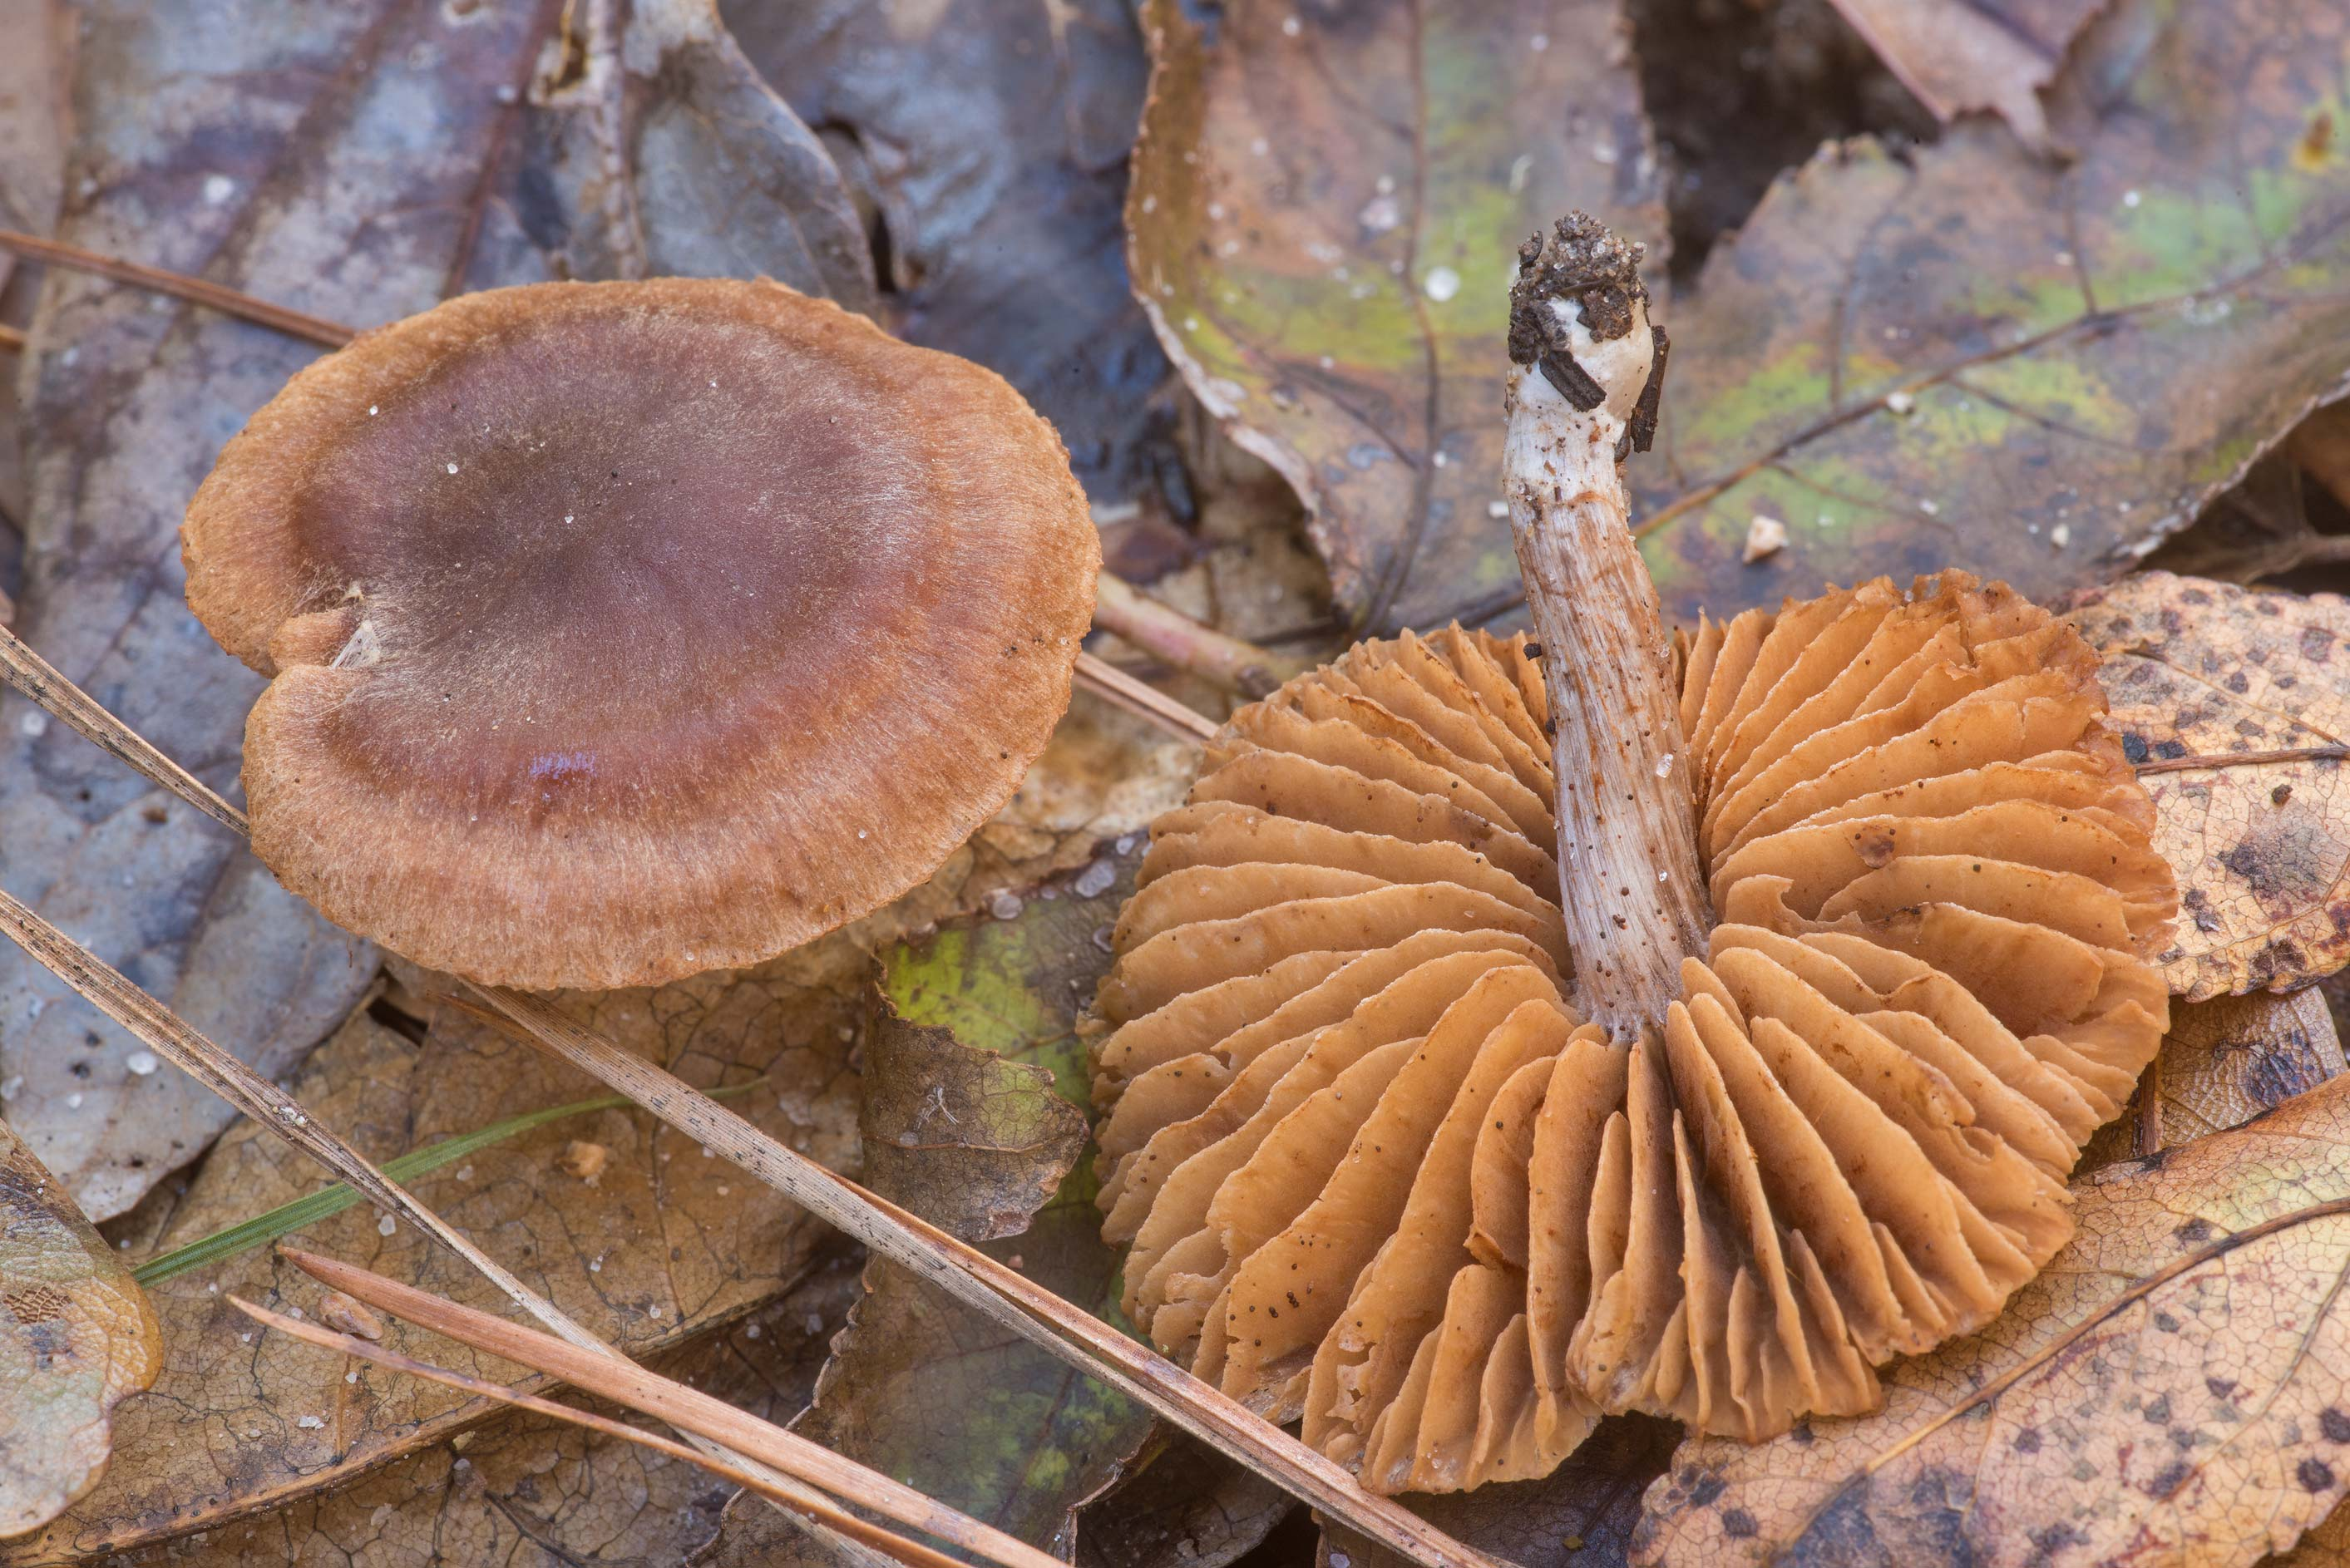 Small brown webcap (Cortinarius) mushrooms in a...National Forest. Cleveland, Texas